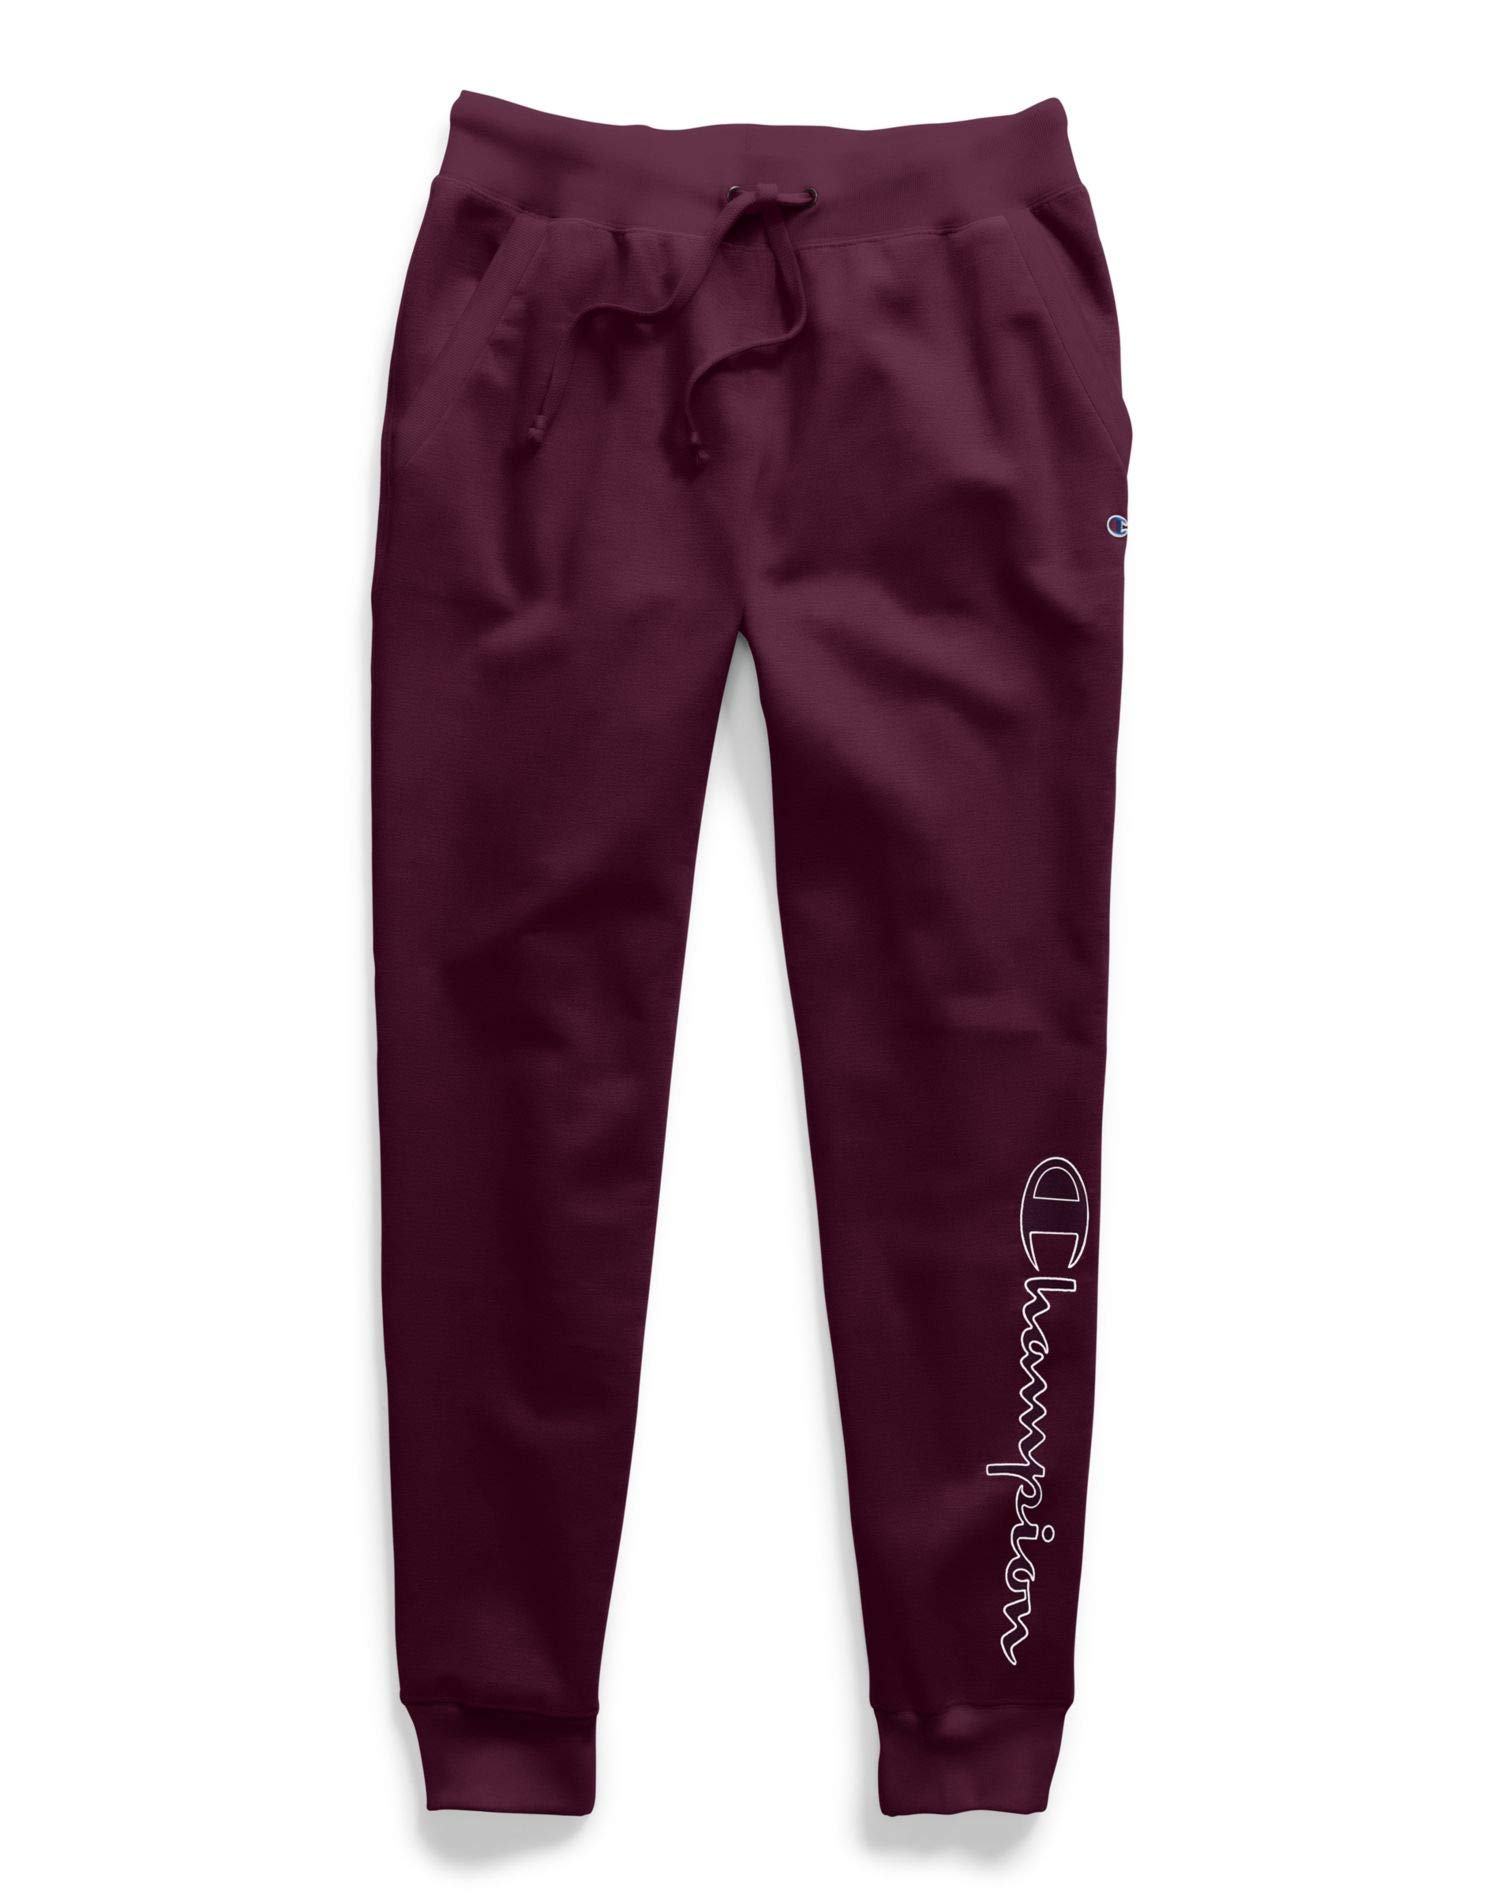 Champion Women's Fleece Jogger Pant